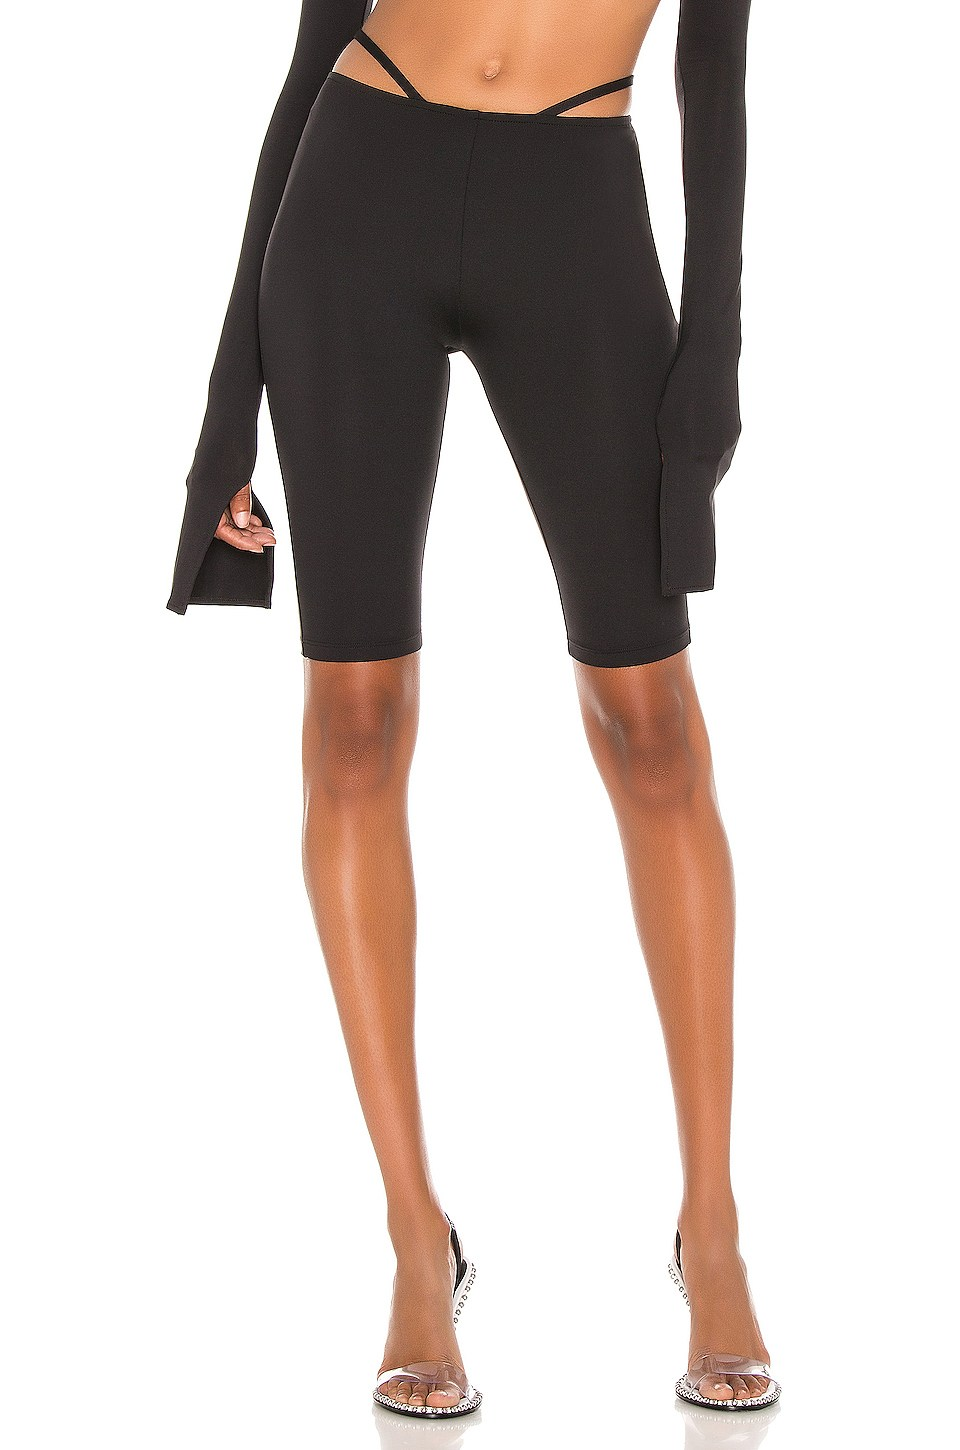 X REVOLVE Low Rise Biker Short by Laquan-Smith, available on revolve.com for $295 Yovanna Ventura Shorts Exact Product